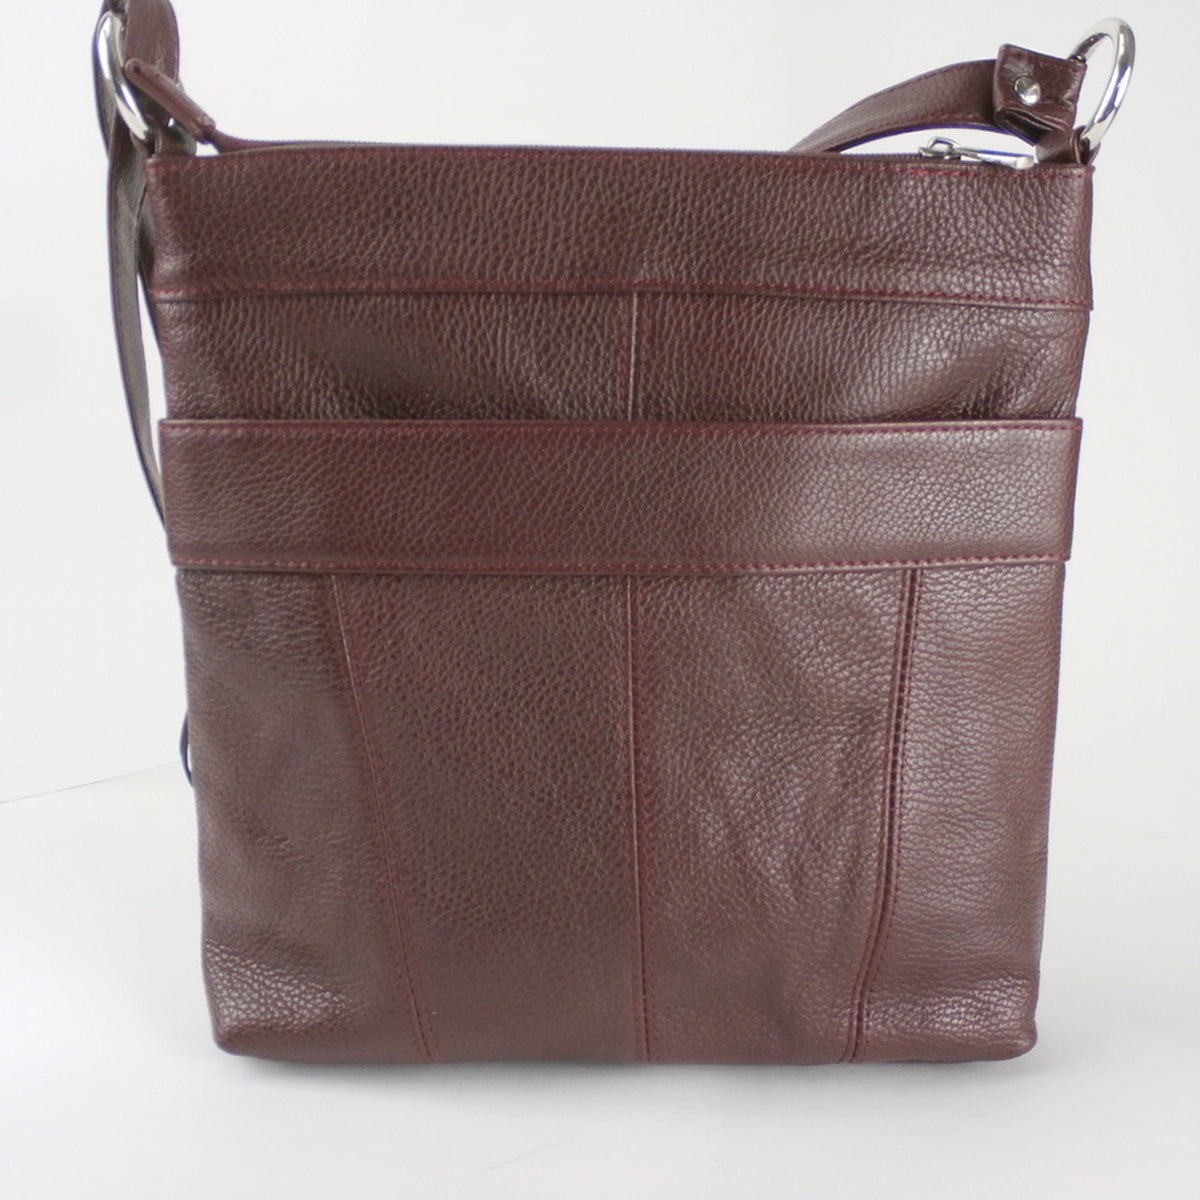 Leather Concealed Carry Purses  and Travel Bags